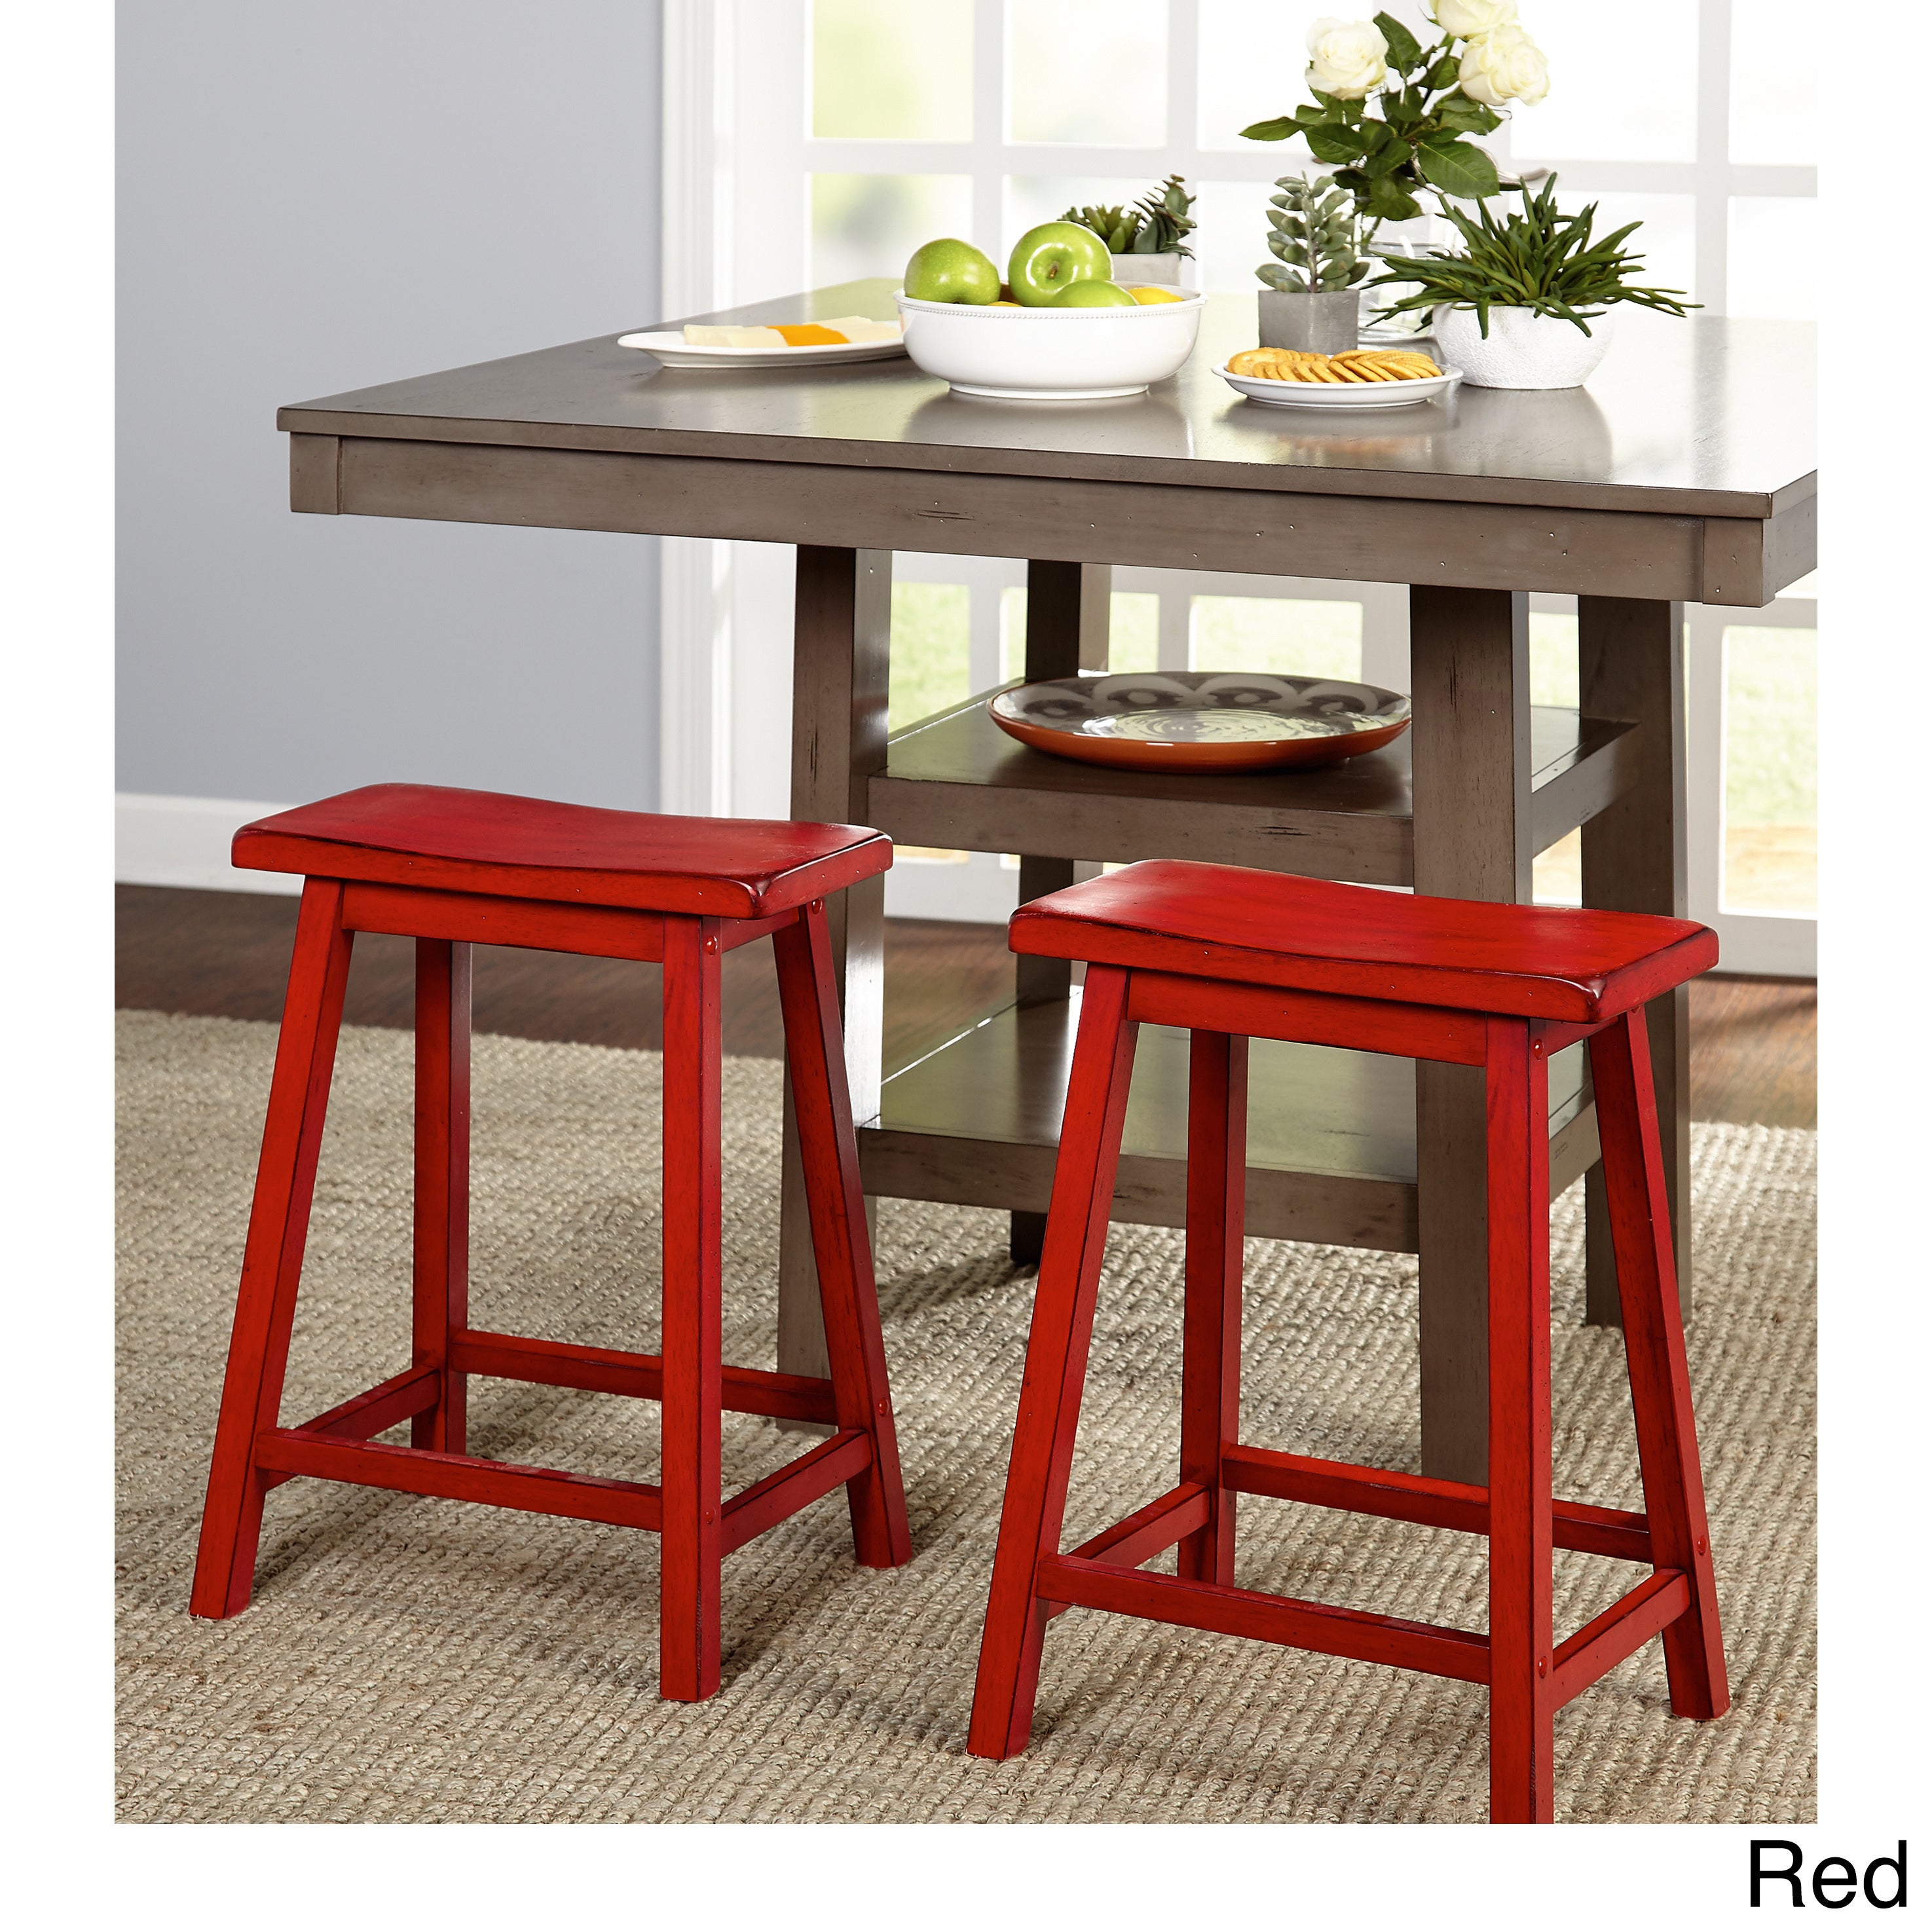 and gb table ikea stained stool pplar outdoor brown products bar en stools spr tables rectangle